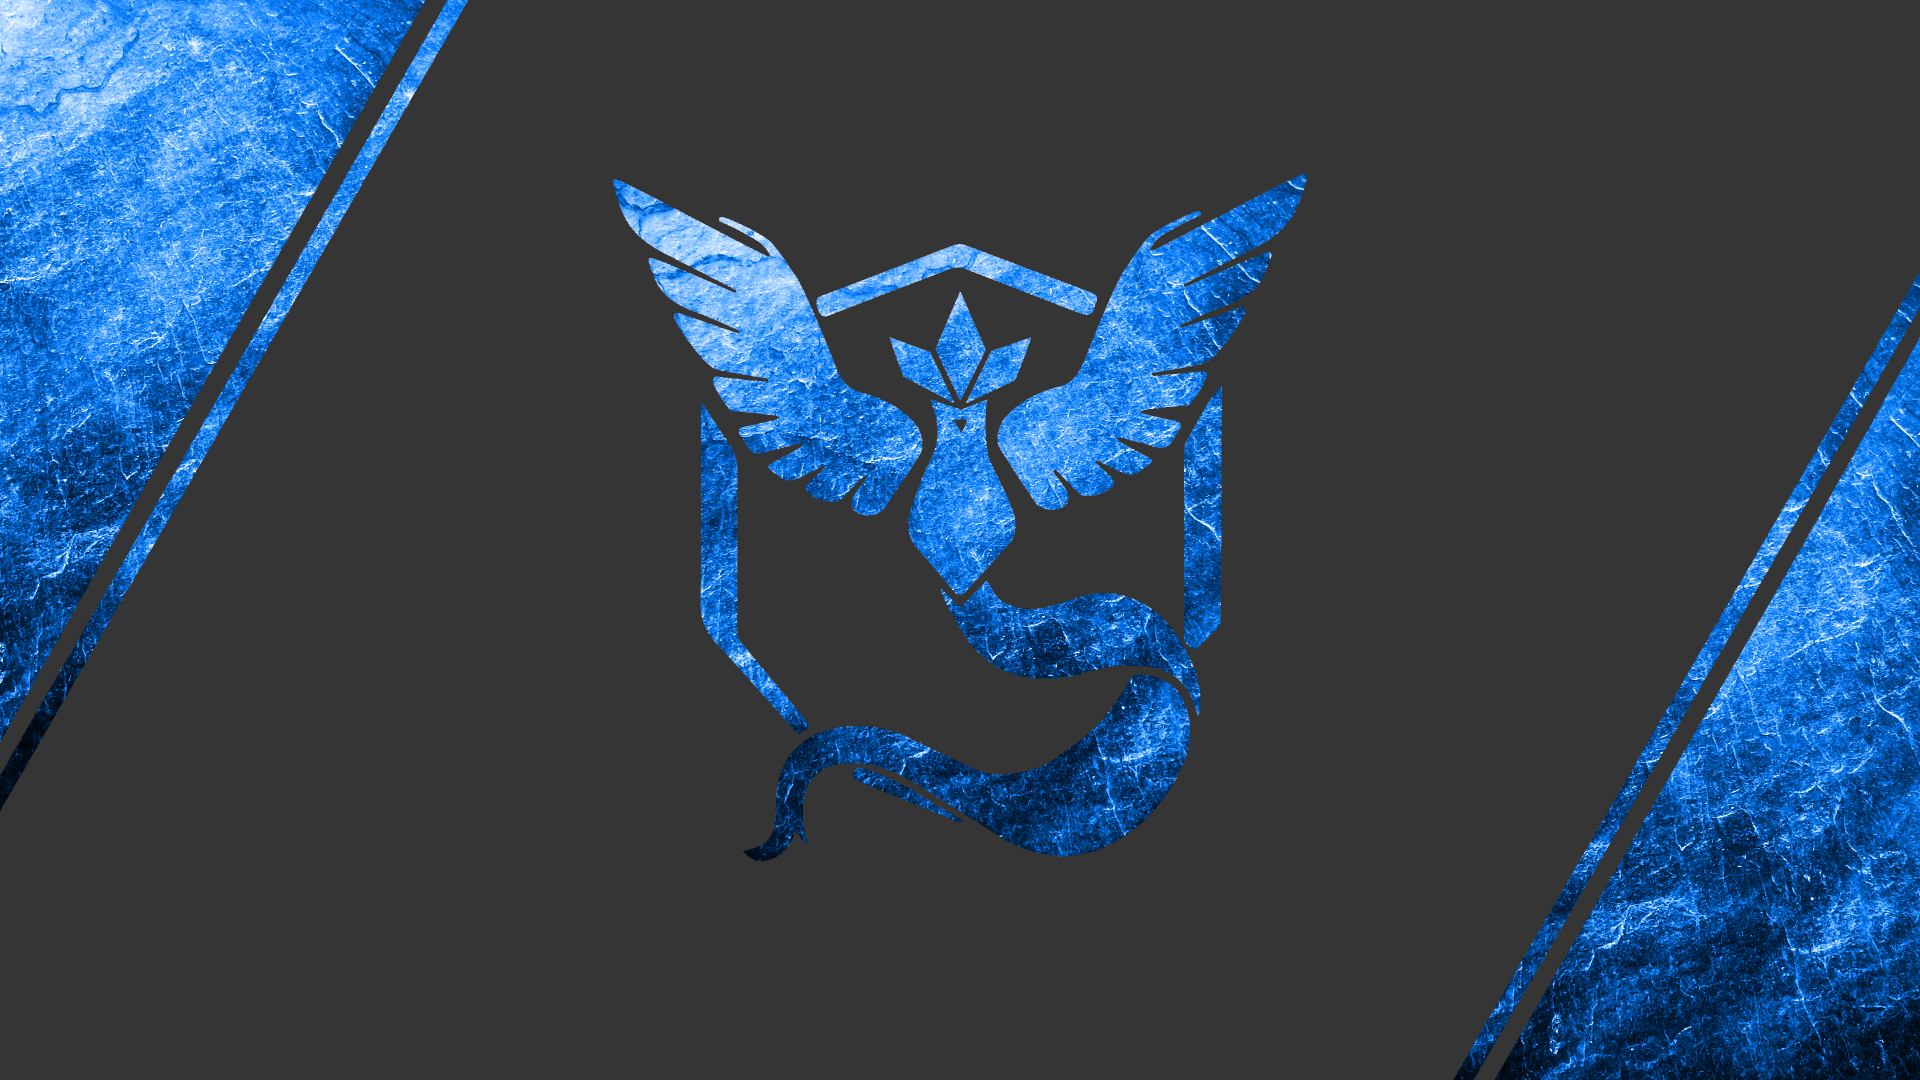 Vídeo Game - Pokémon GO  Pokemon Go Pokémon Team Mystic Articuno (Pokémon) Papel de Parede